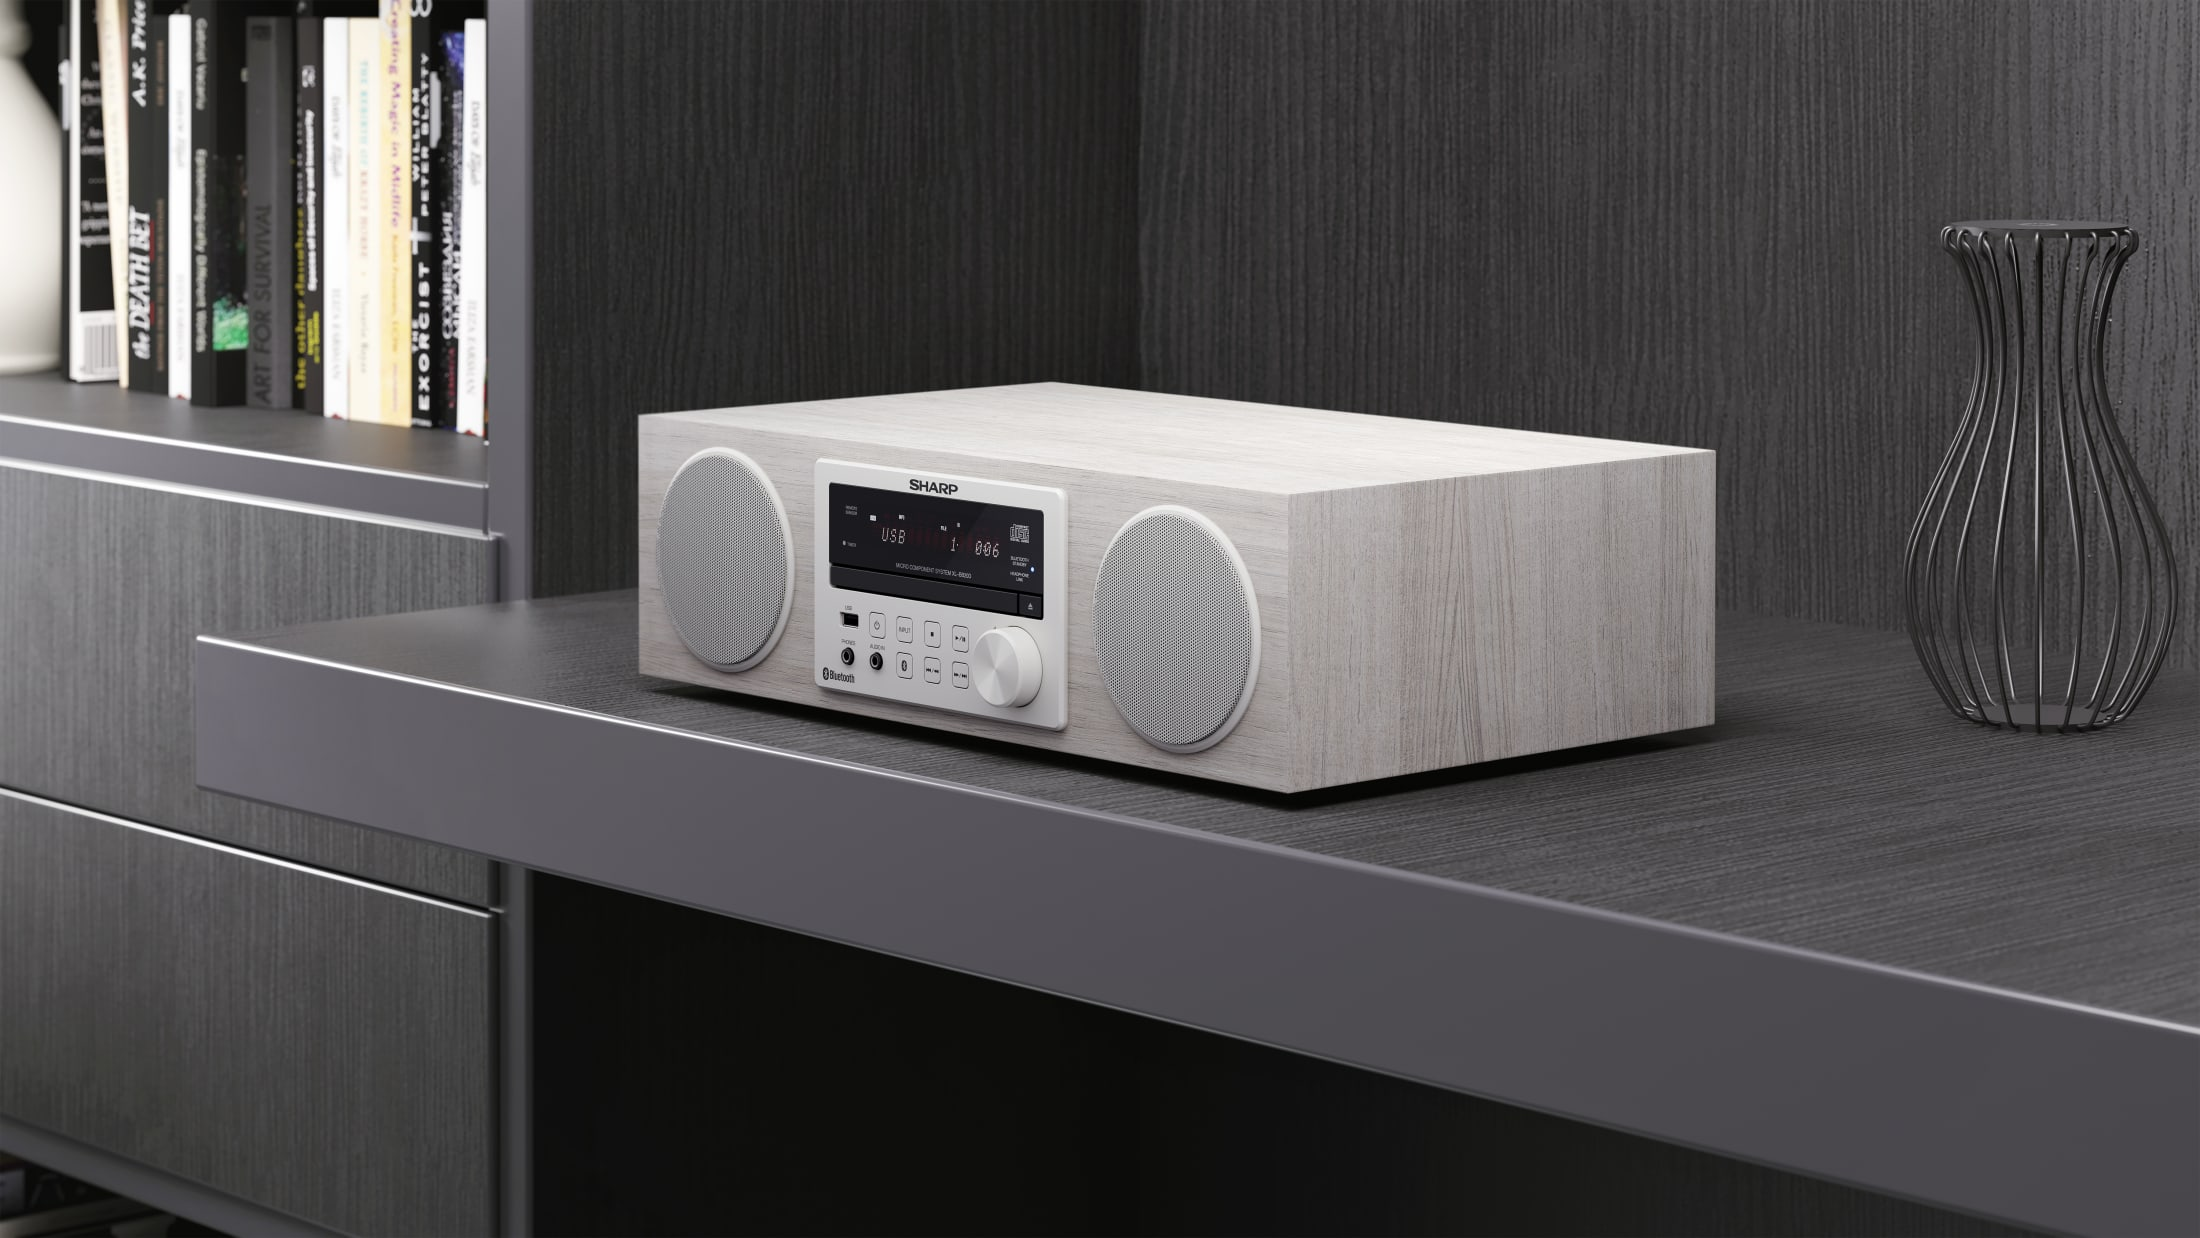 All-in-One Hi-Fi Sound System, 100 W, with Bluetooth wireless music streaming, CD player, DAB/DAB+/FM tuner and remote control.